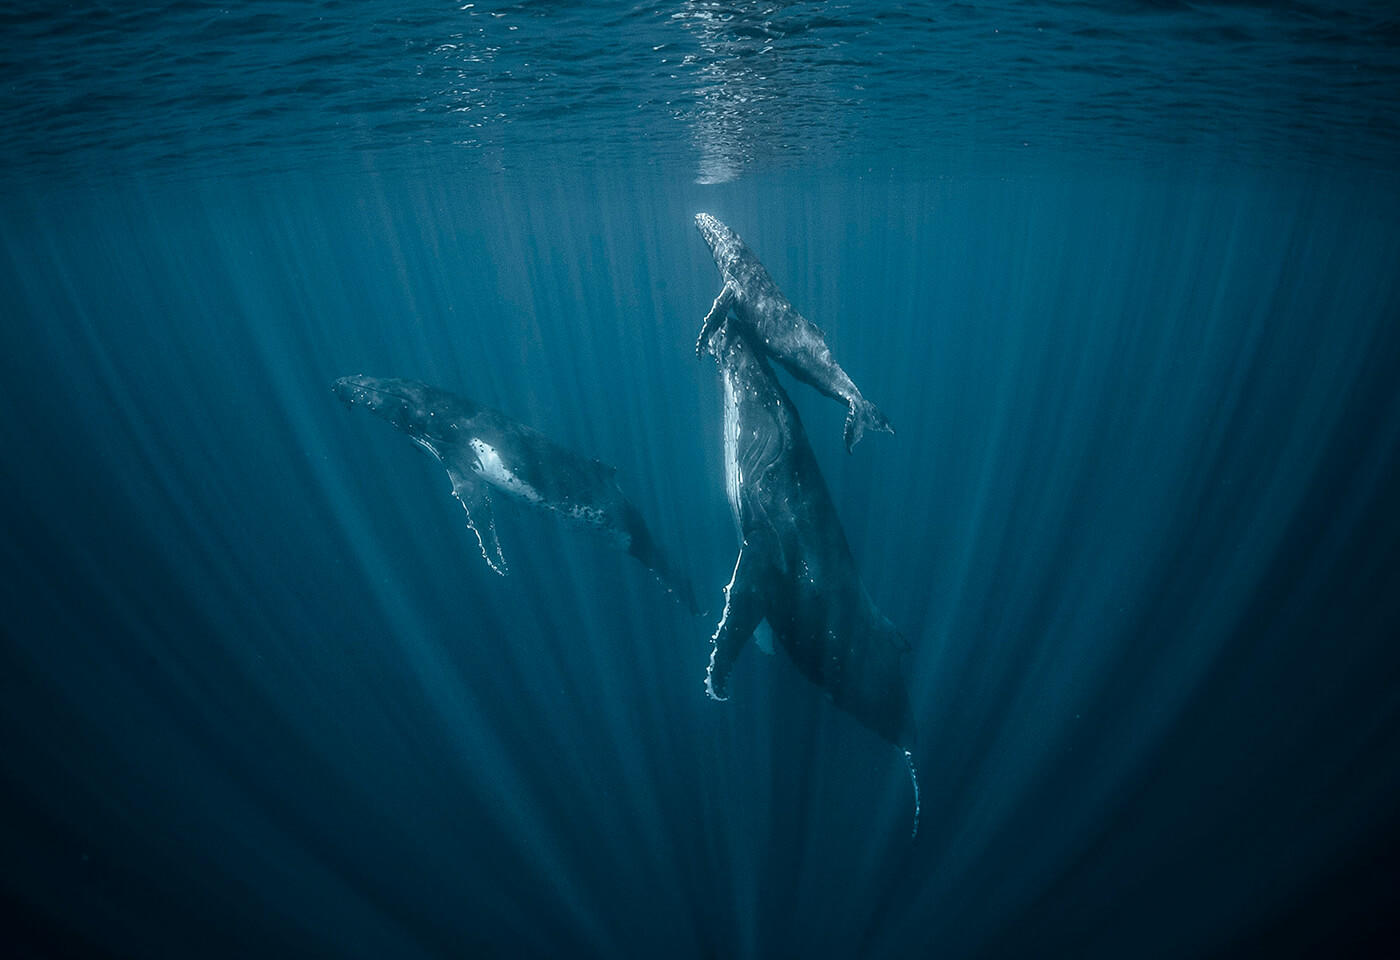 Whales swimming underwater